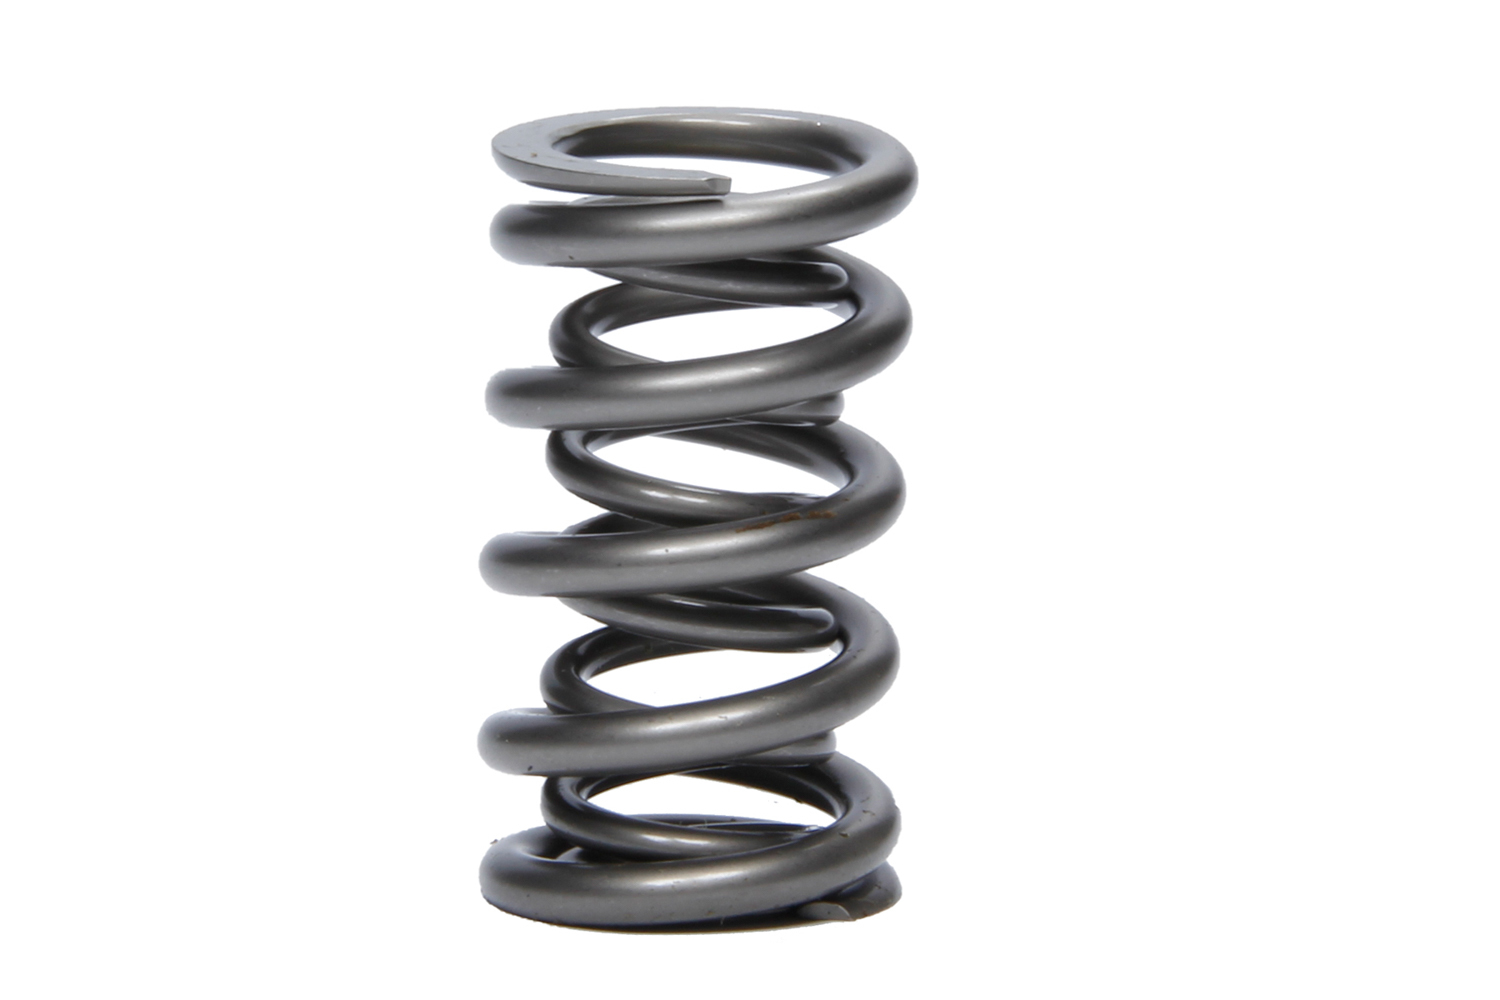 PAC Racing Springs PAC-1237X-1 Valve Spring, 1200 Series, Dual Spring, 550 lb/in Spring Rate, 1.045 in Coil Bind, 1.274 in OD, Each